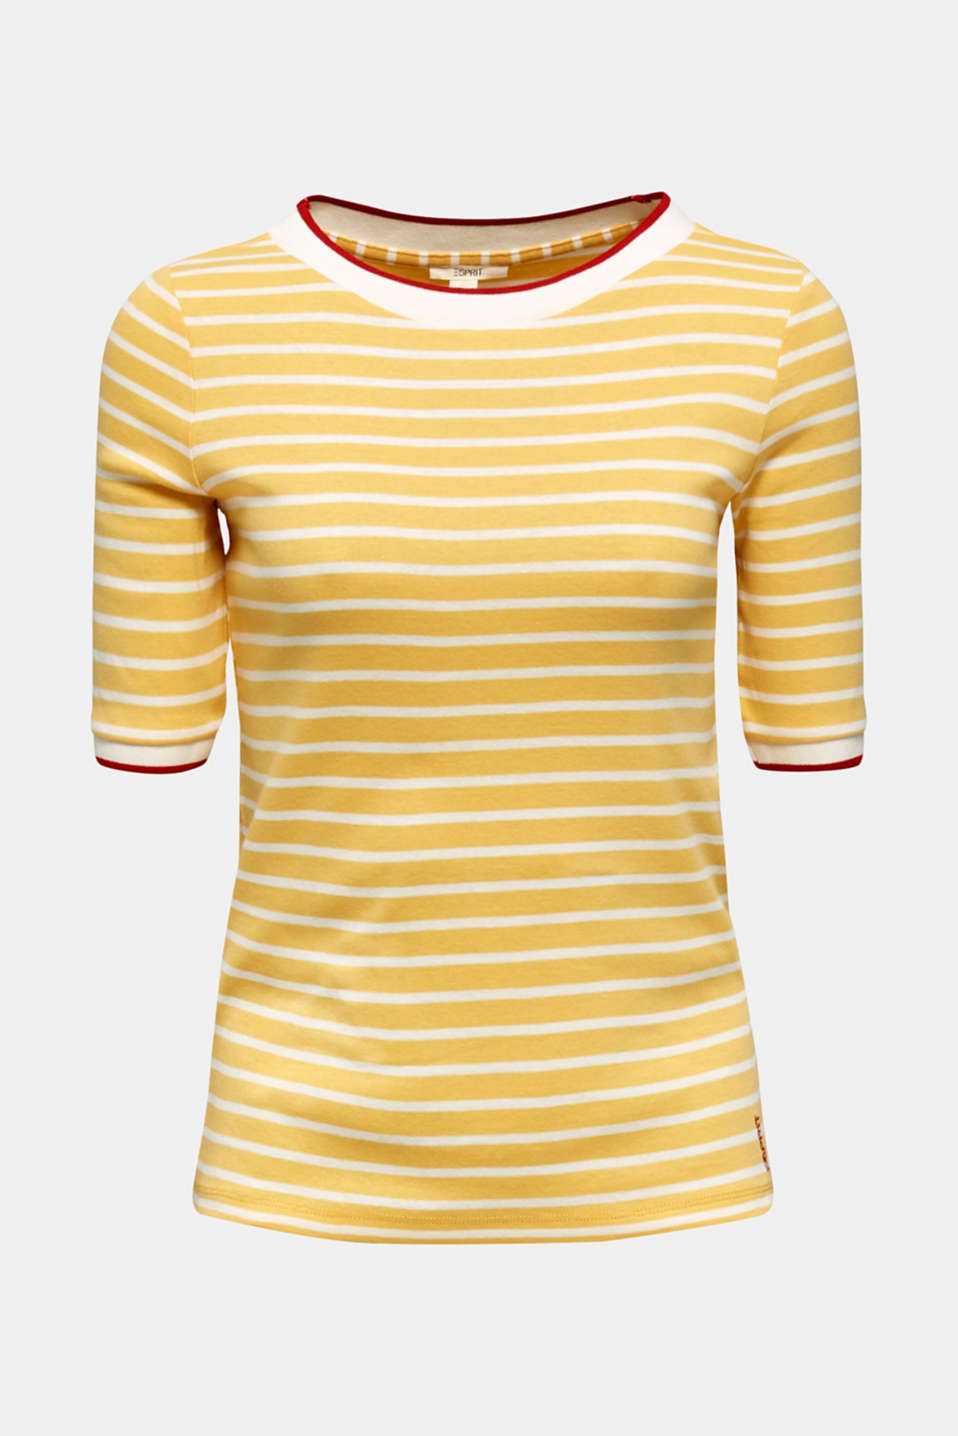 Striped top with ribbed borders, 100% cotton, YELLOW, detail image number 6